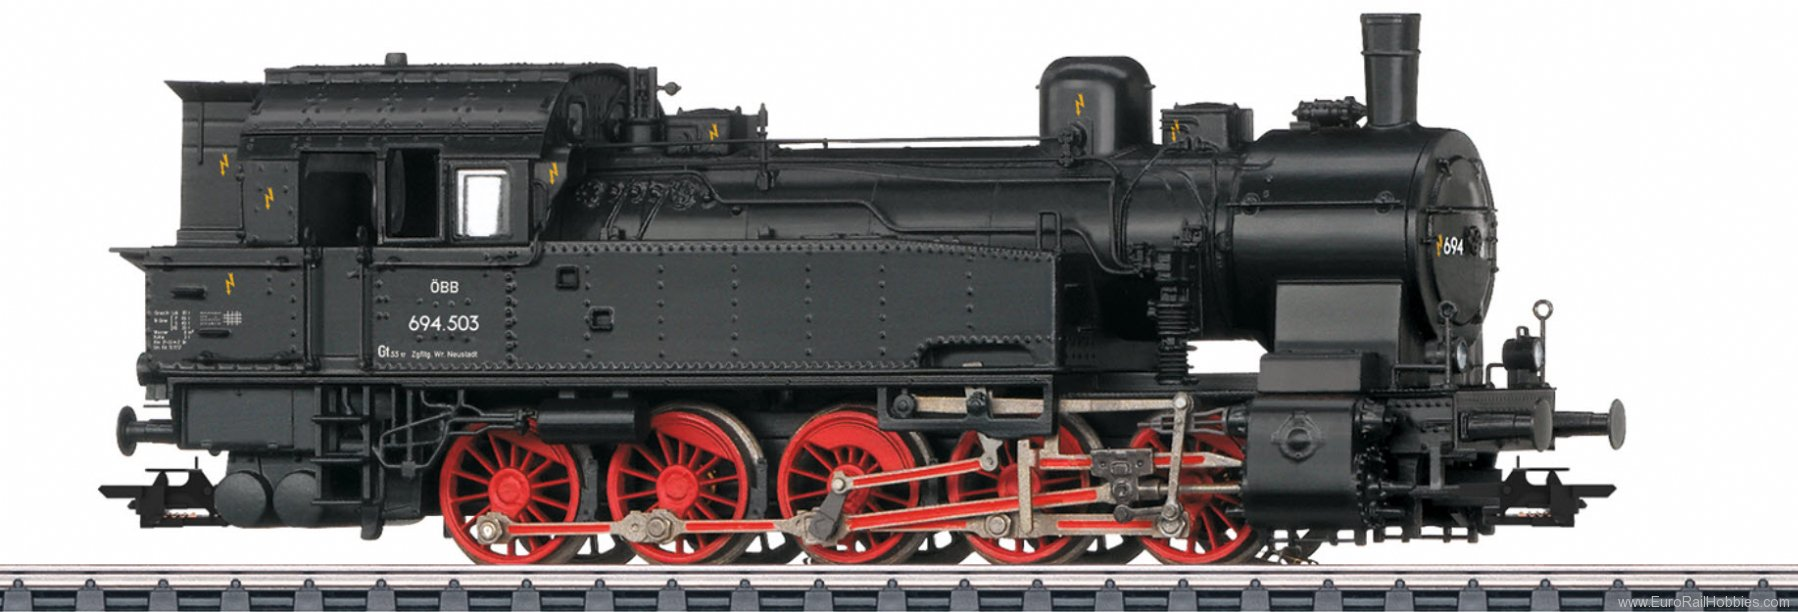 Marklin 37178 OBB Austrian cl 694 Steam Locomotive MFX+ w/S